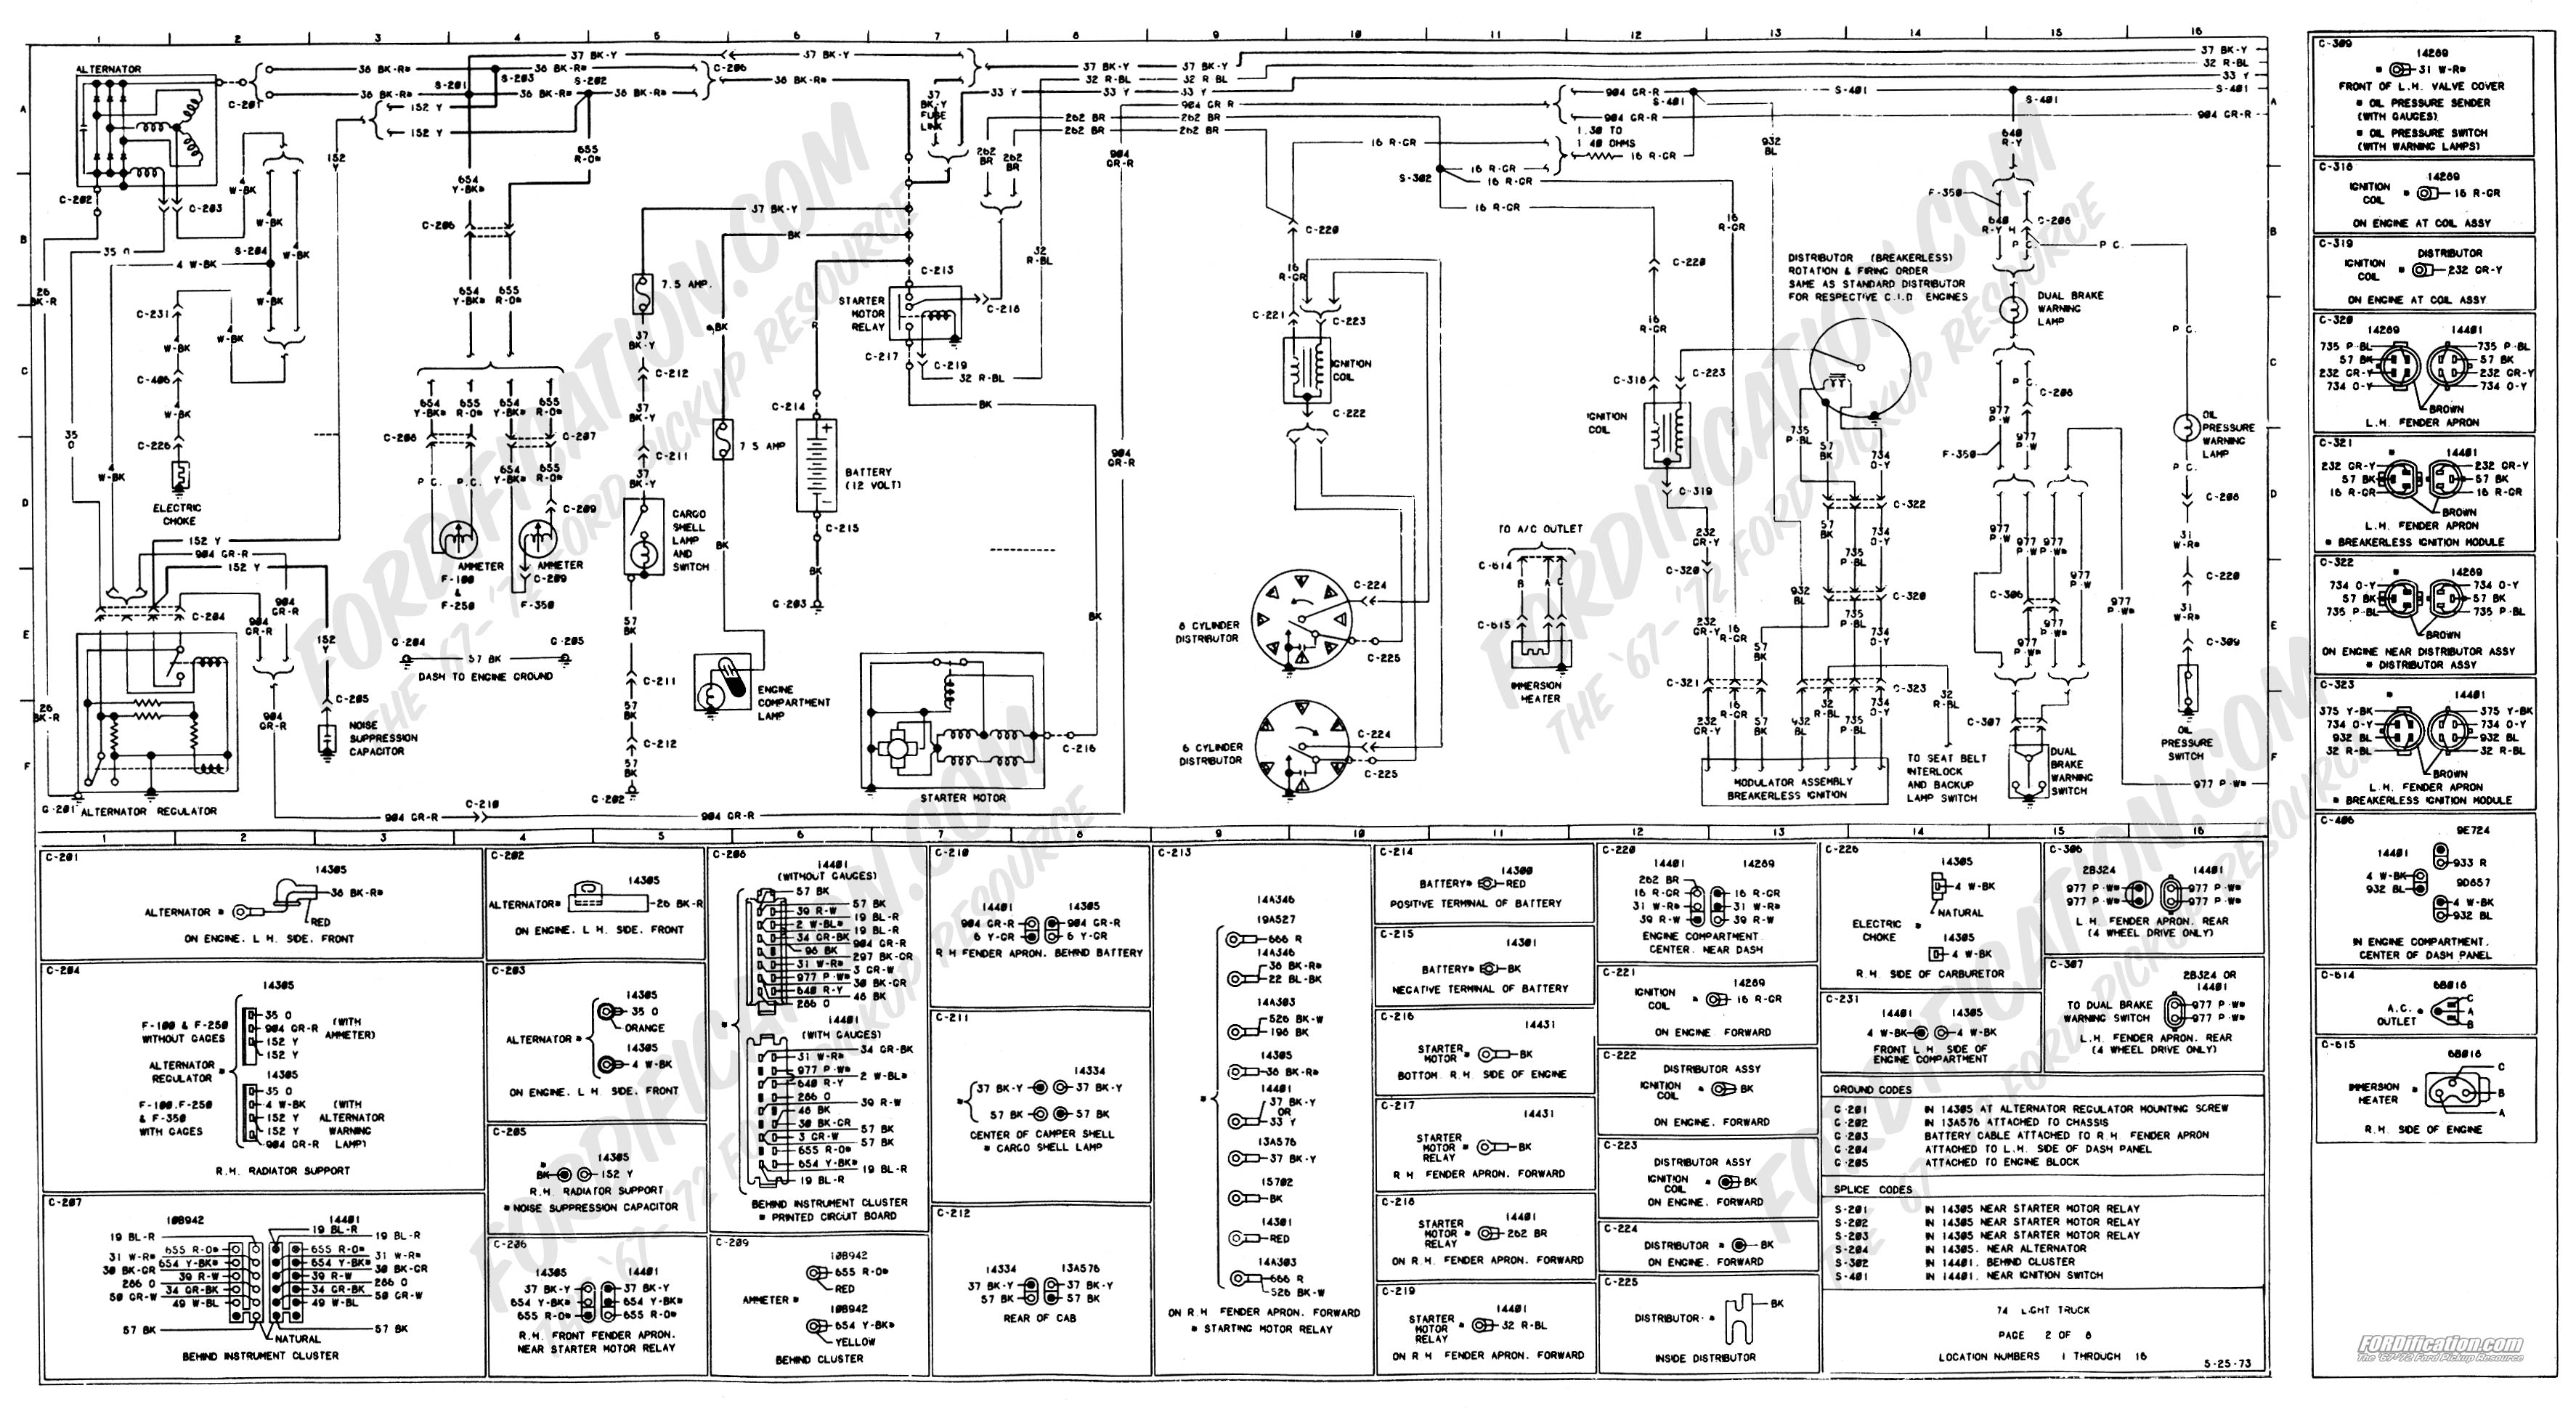 l9000 wiring schematic wiring diagrams rh boltsoft net Wiring Schematics for Directional LED System Wiring Schematics for Dallas Arbiter Wah-Face